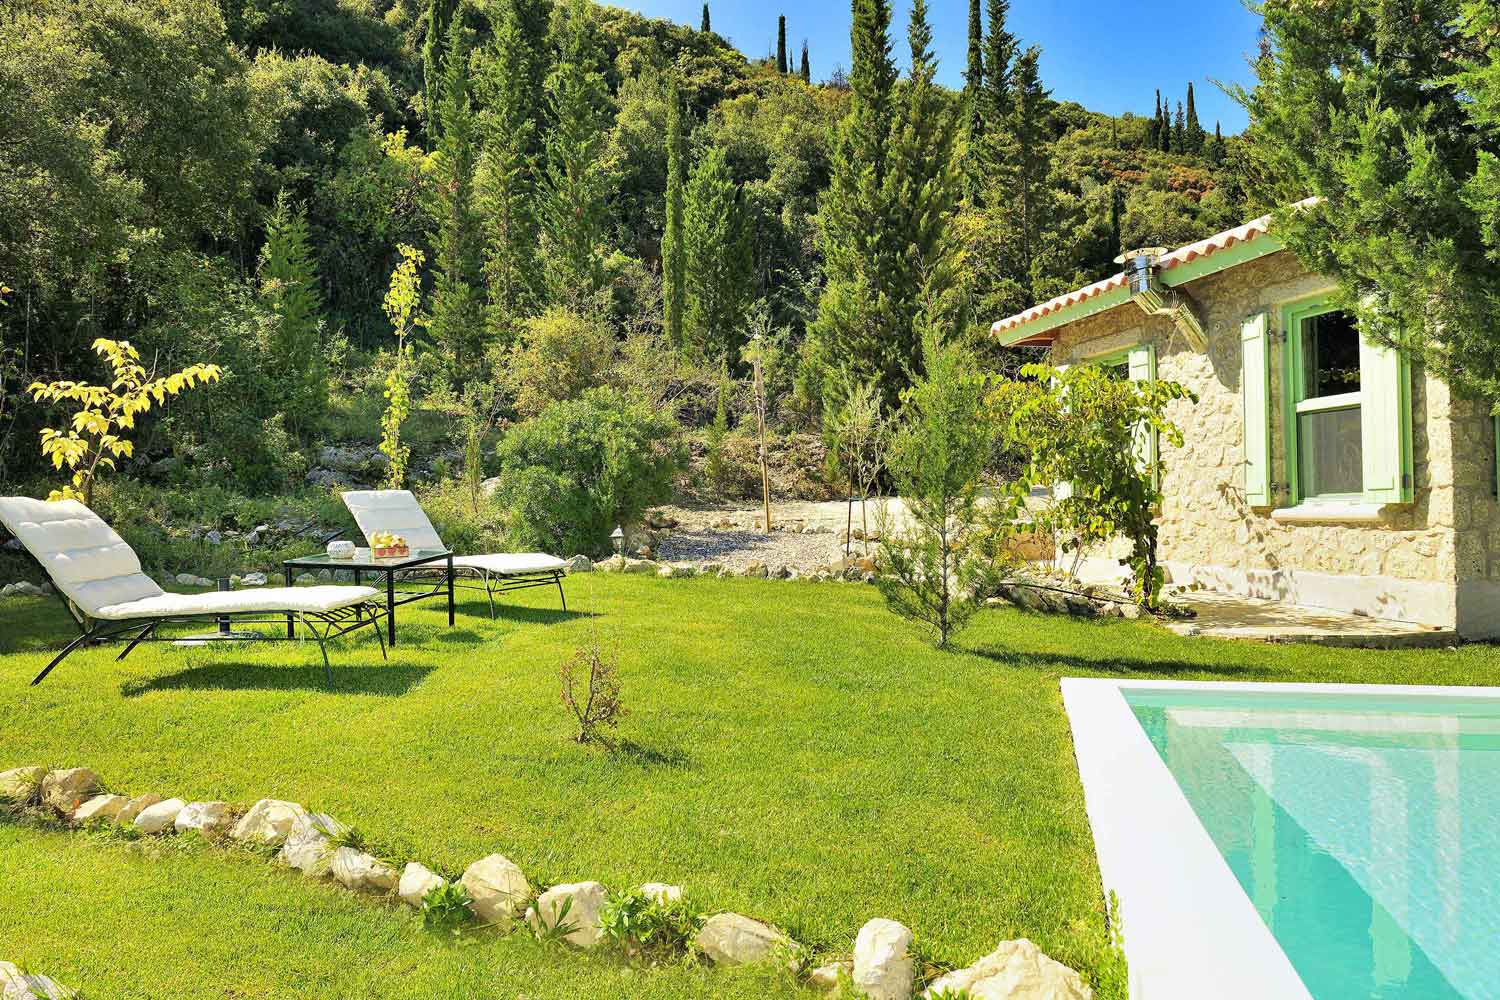 private pool villa for honey moon, beautiful garden landscape